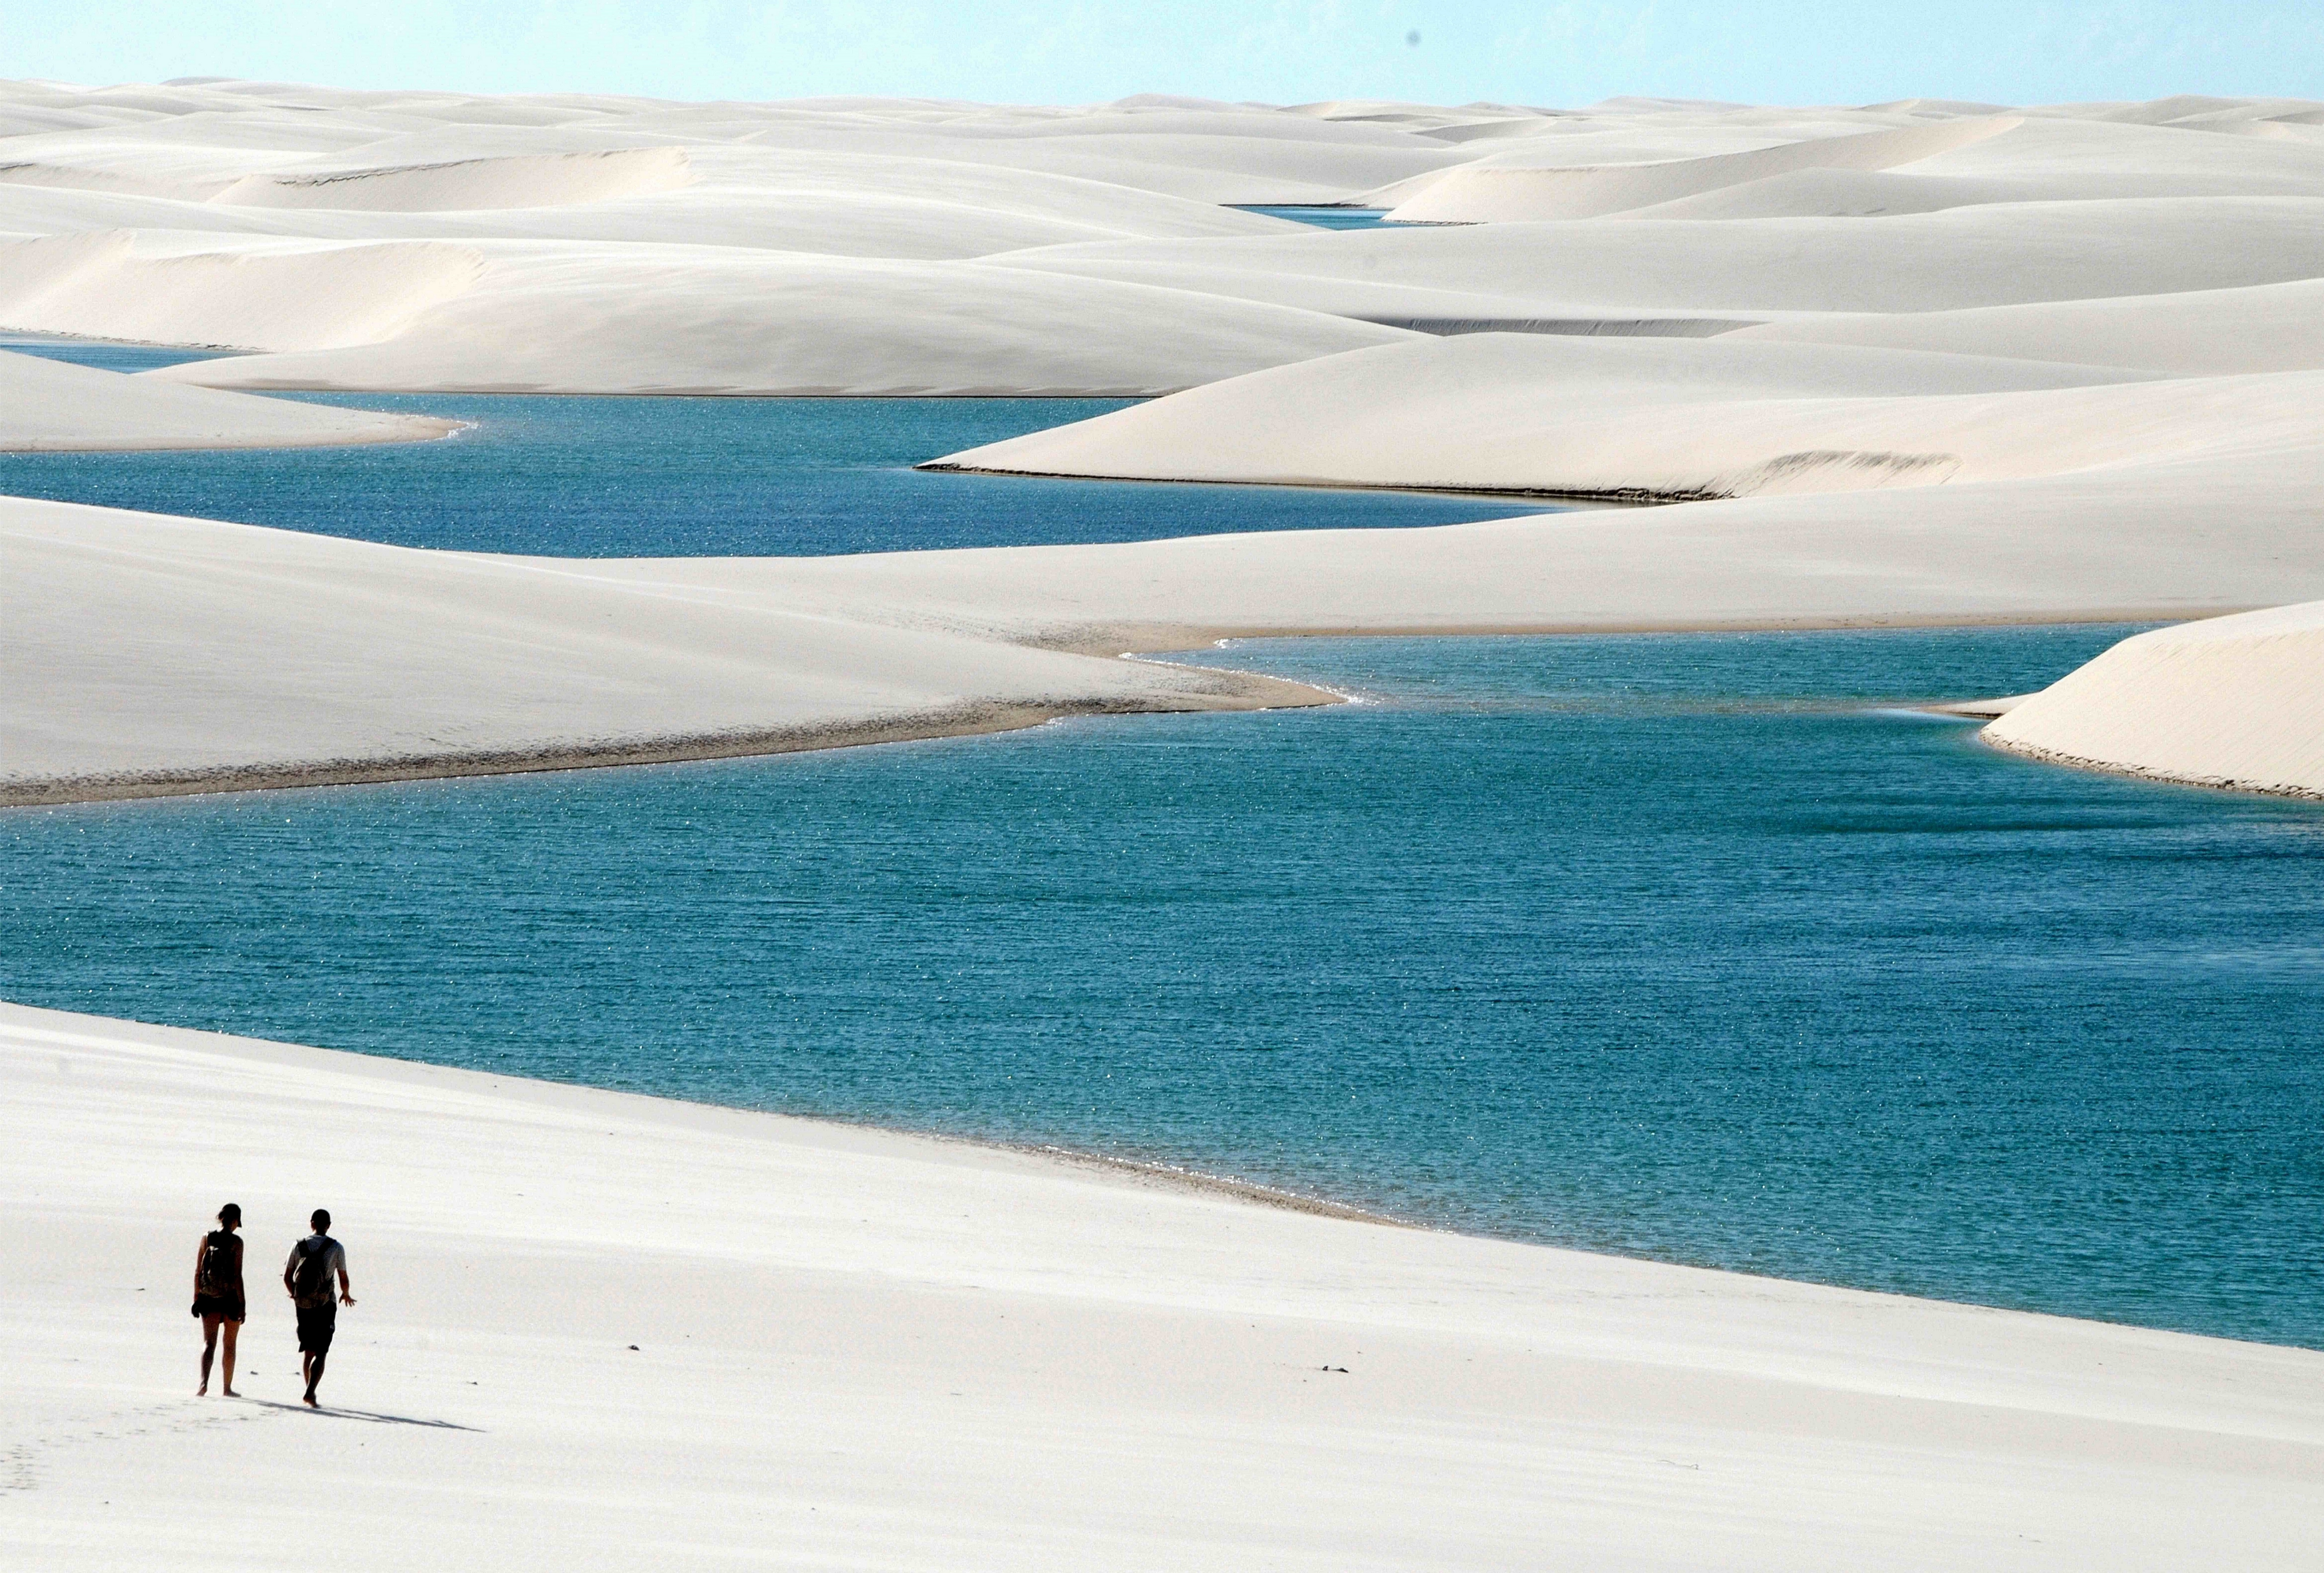 Lenis Maranhenses   The pristine oasis of blue water   Places to 7000x4739